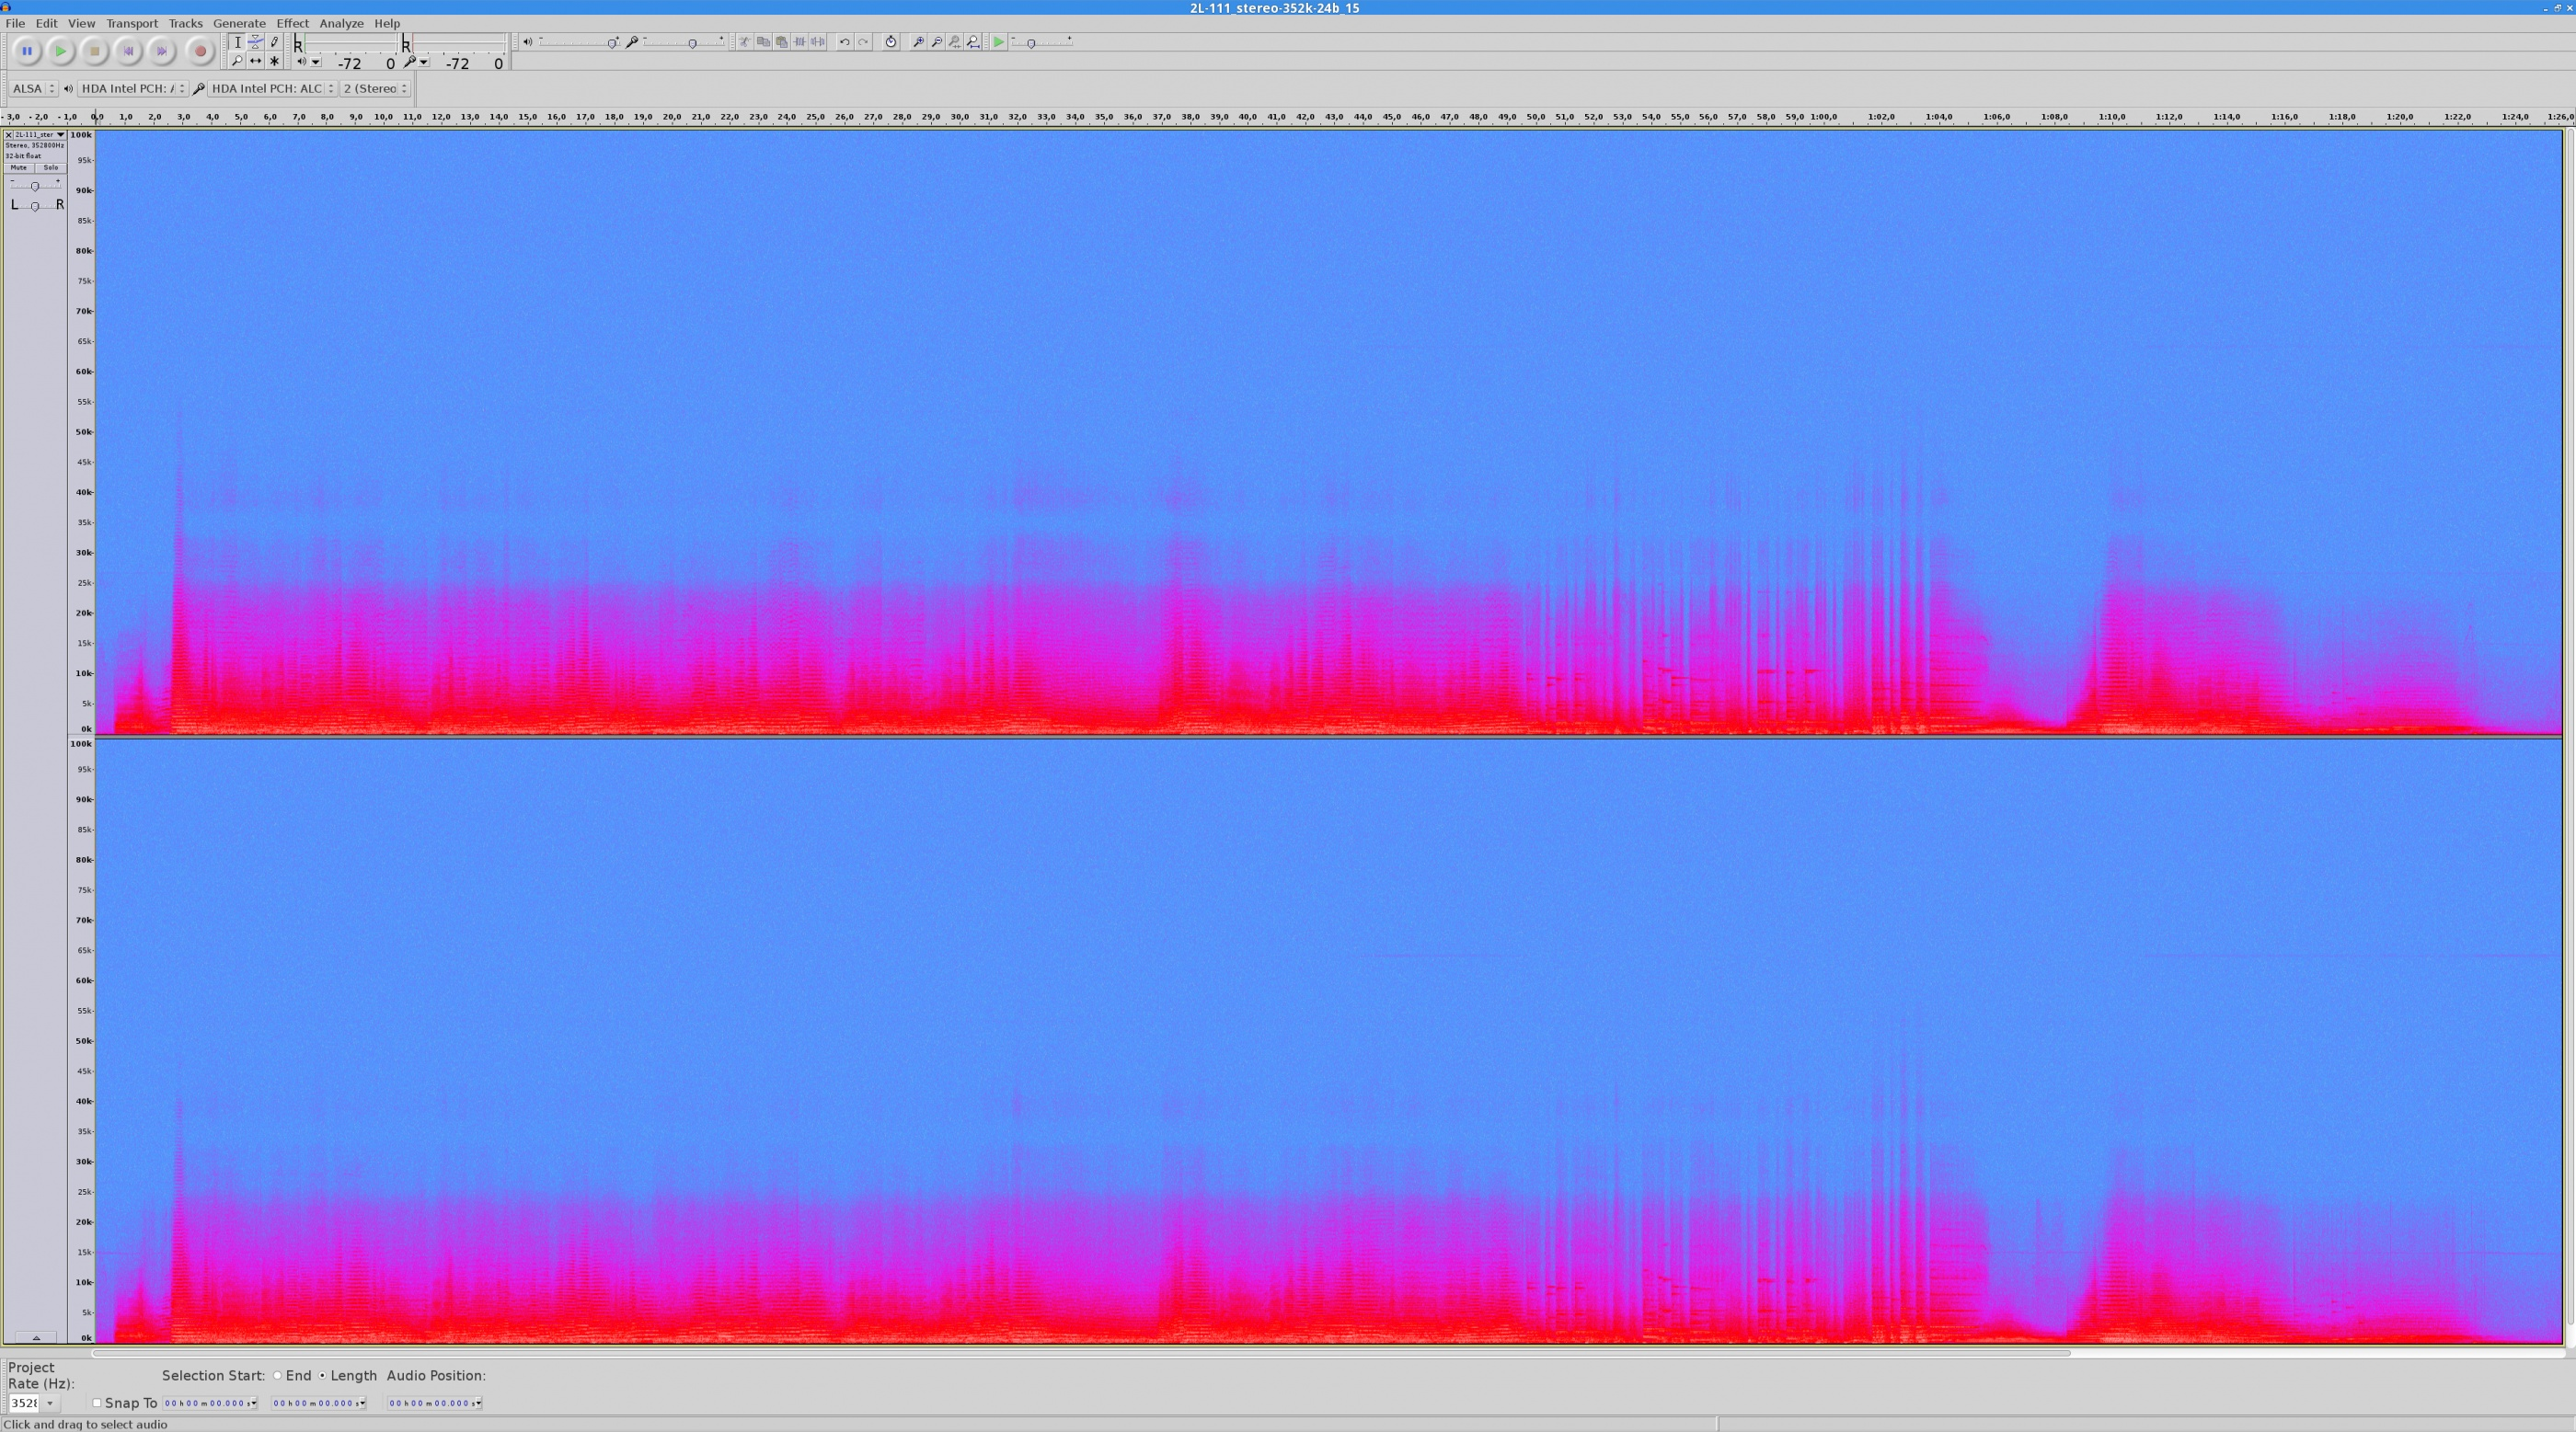 Some analysis and comparison of MQA encoded FLAC vs normal